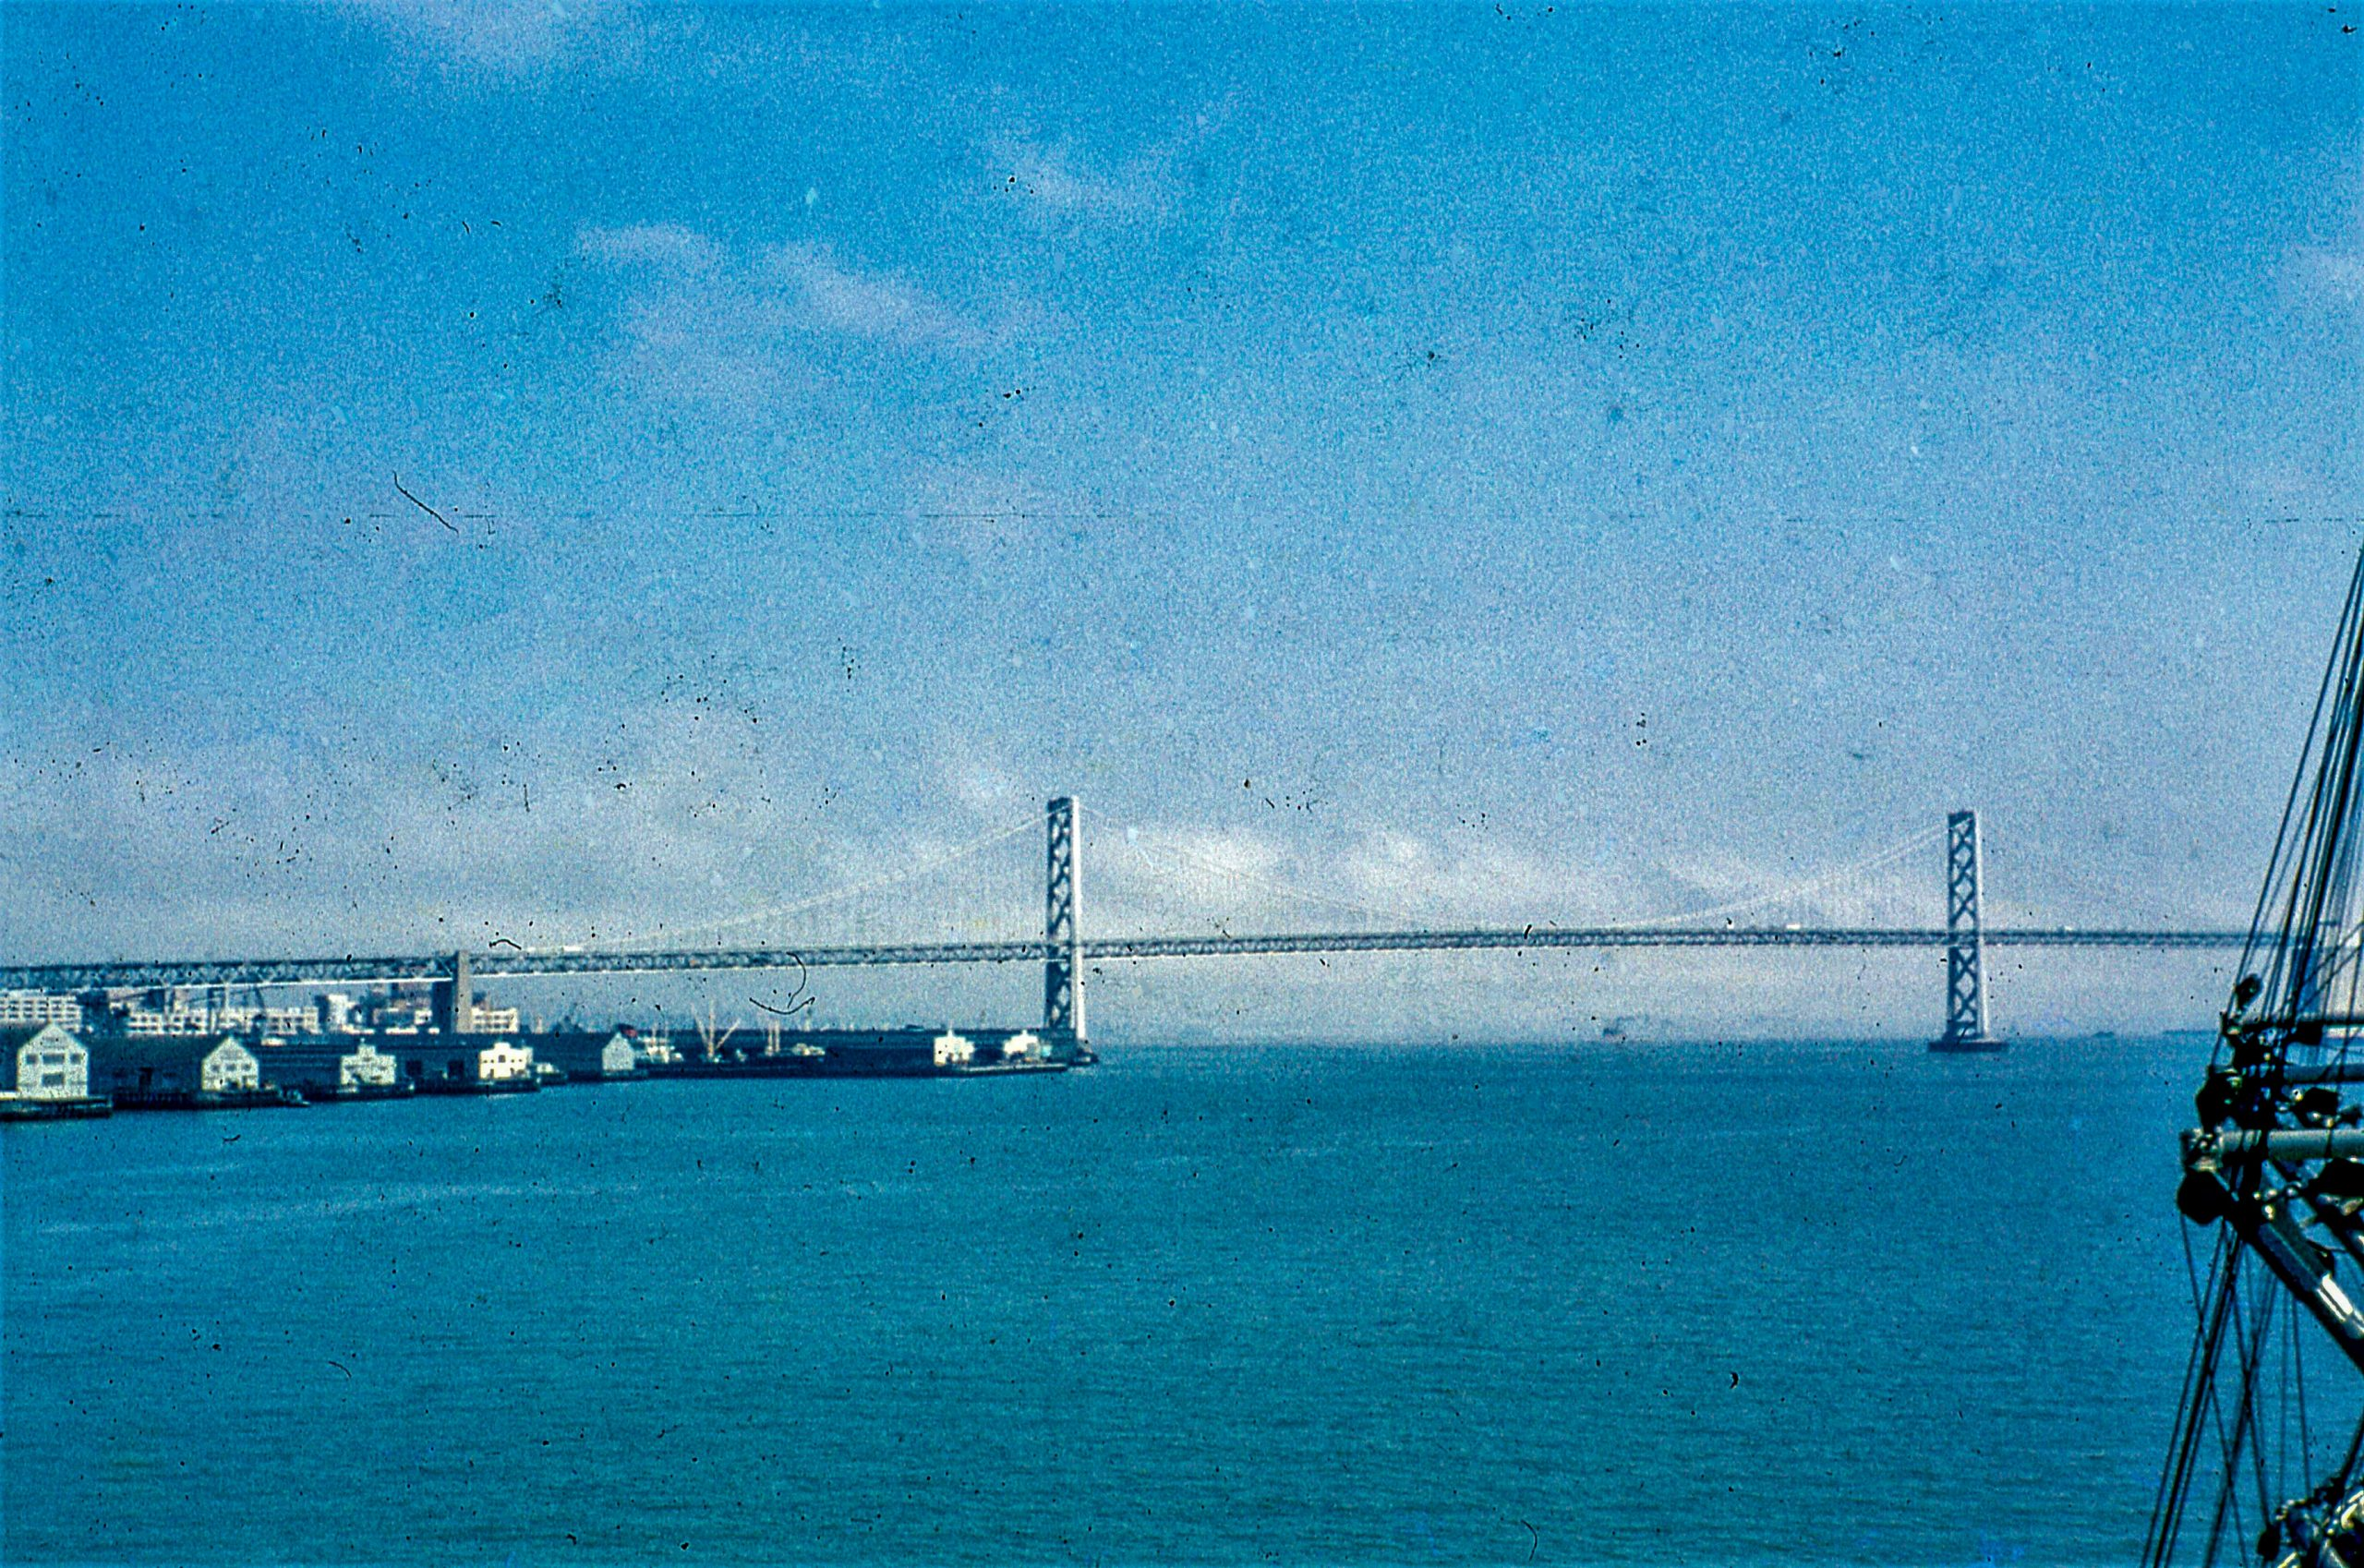 Crossing the Pacific by Freighter